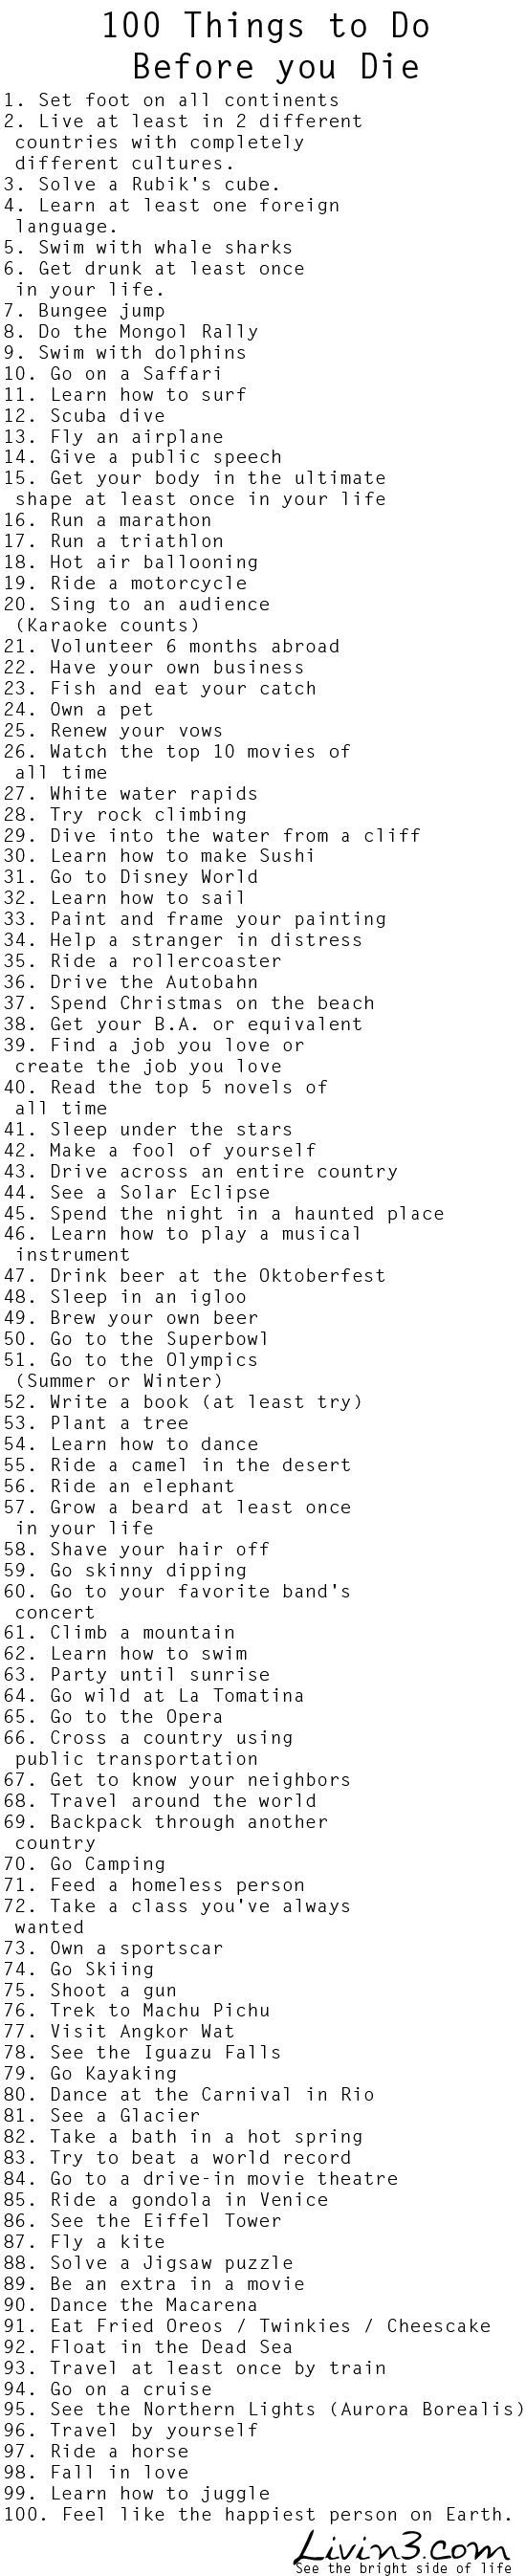 """100 Things to do before I die """"Bucket List""""  Live Your Life. Ya know, except the beard one..."""